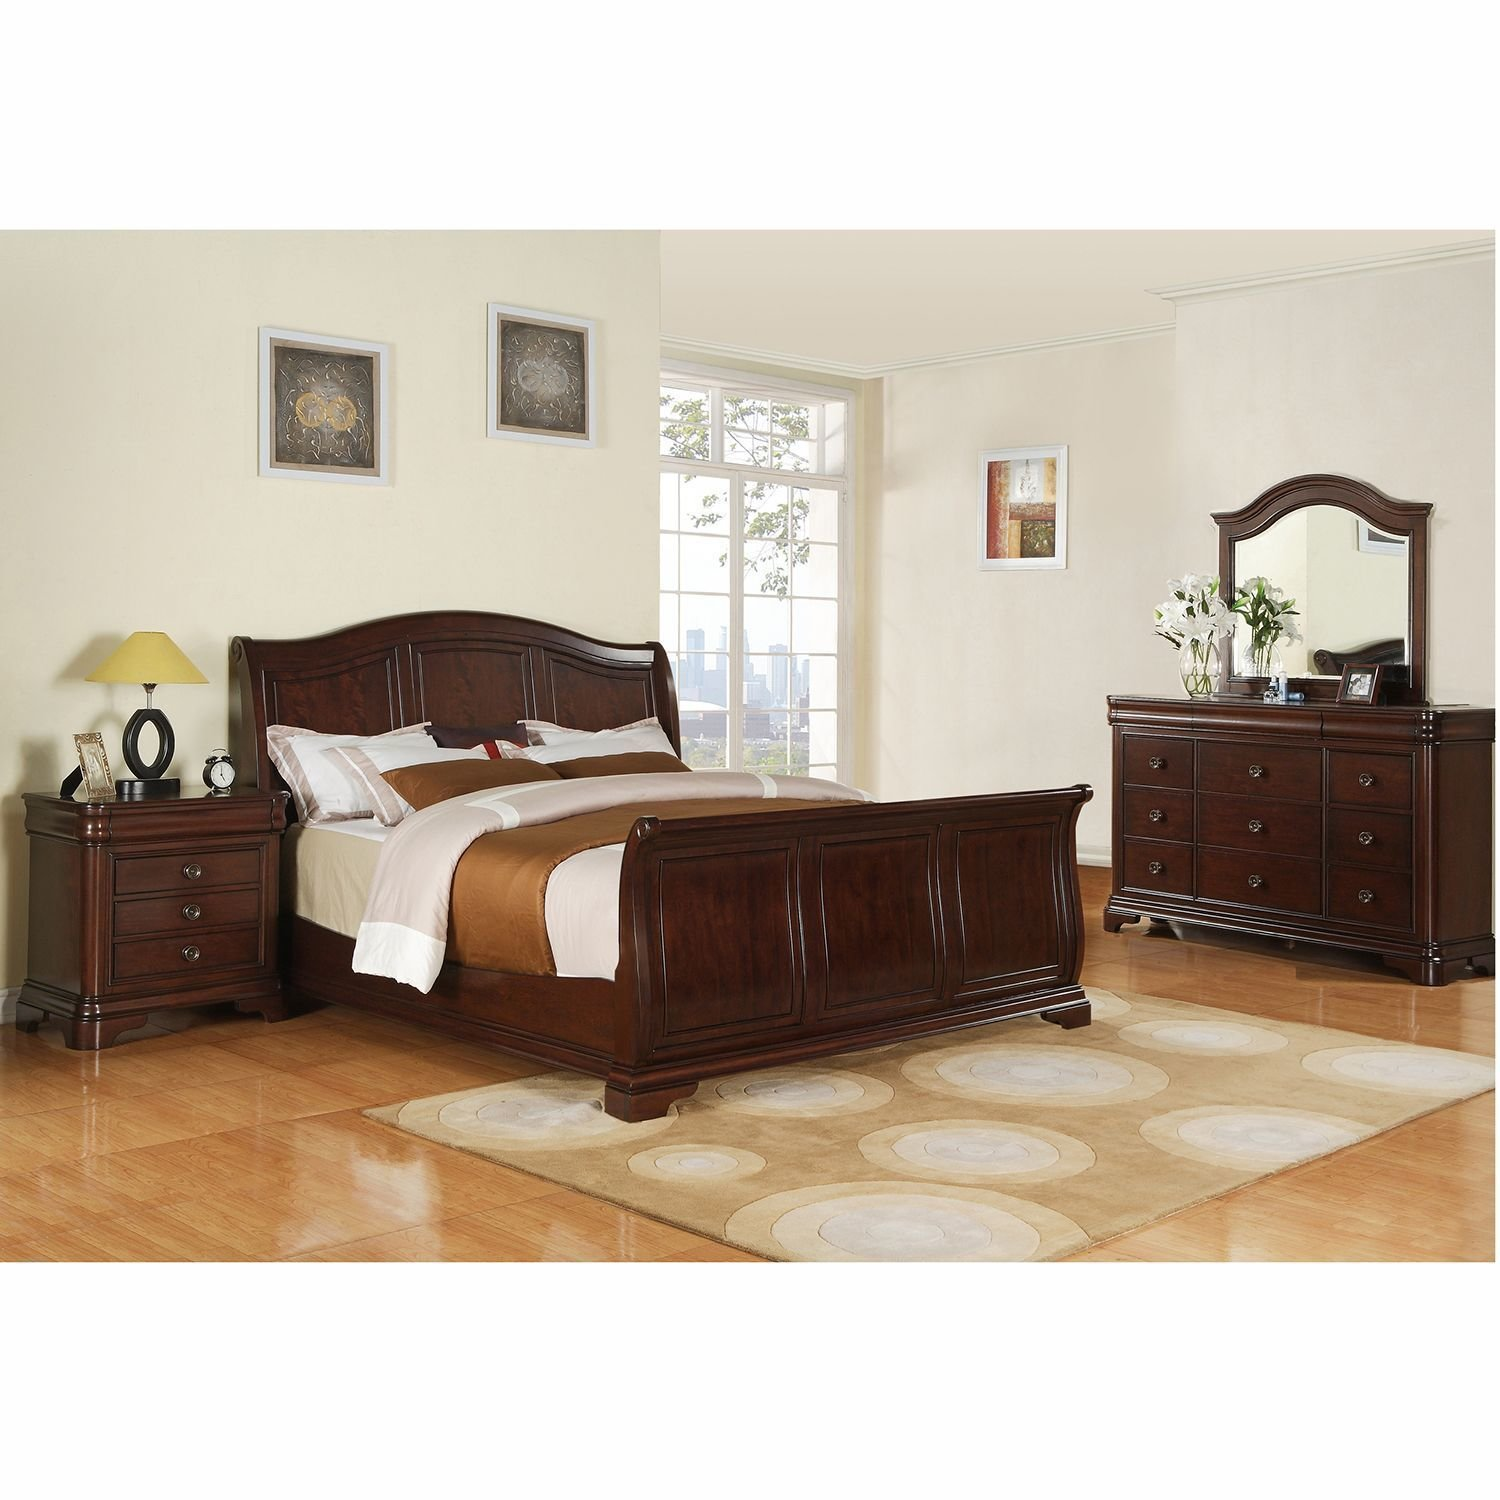 Best Improved Sam S Club Bedroom Furniture Nice Looking Sets With Pictures